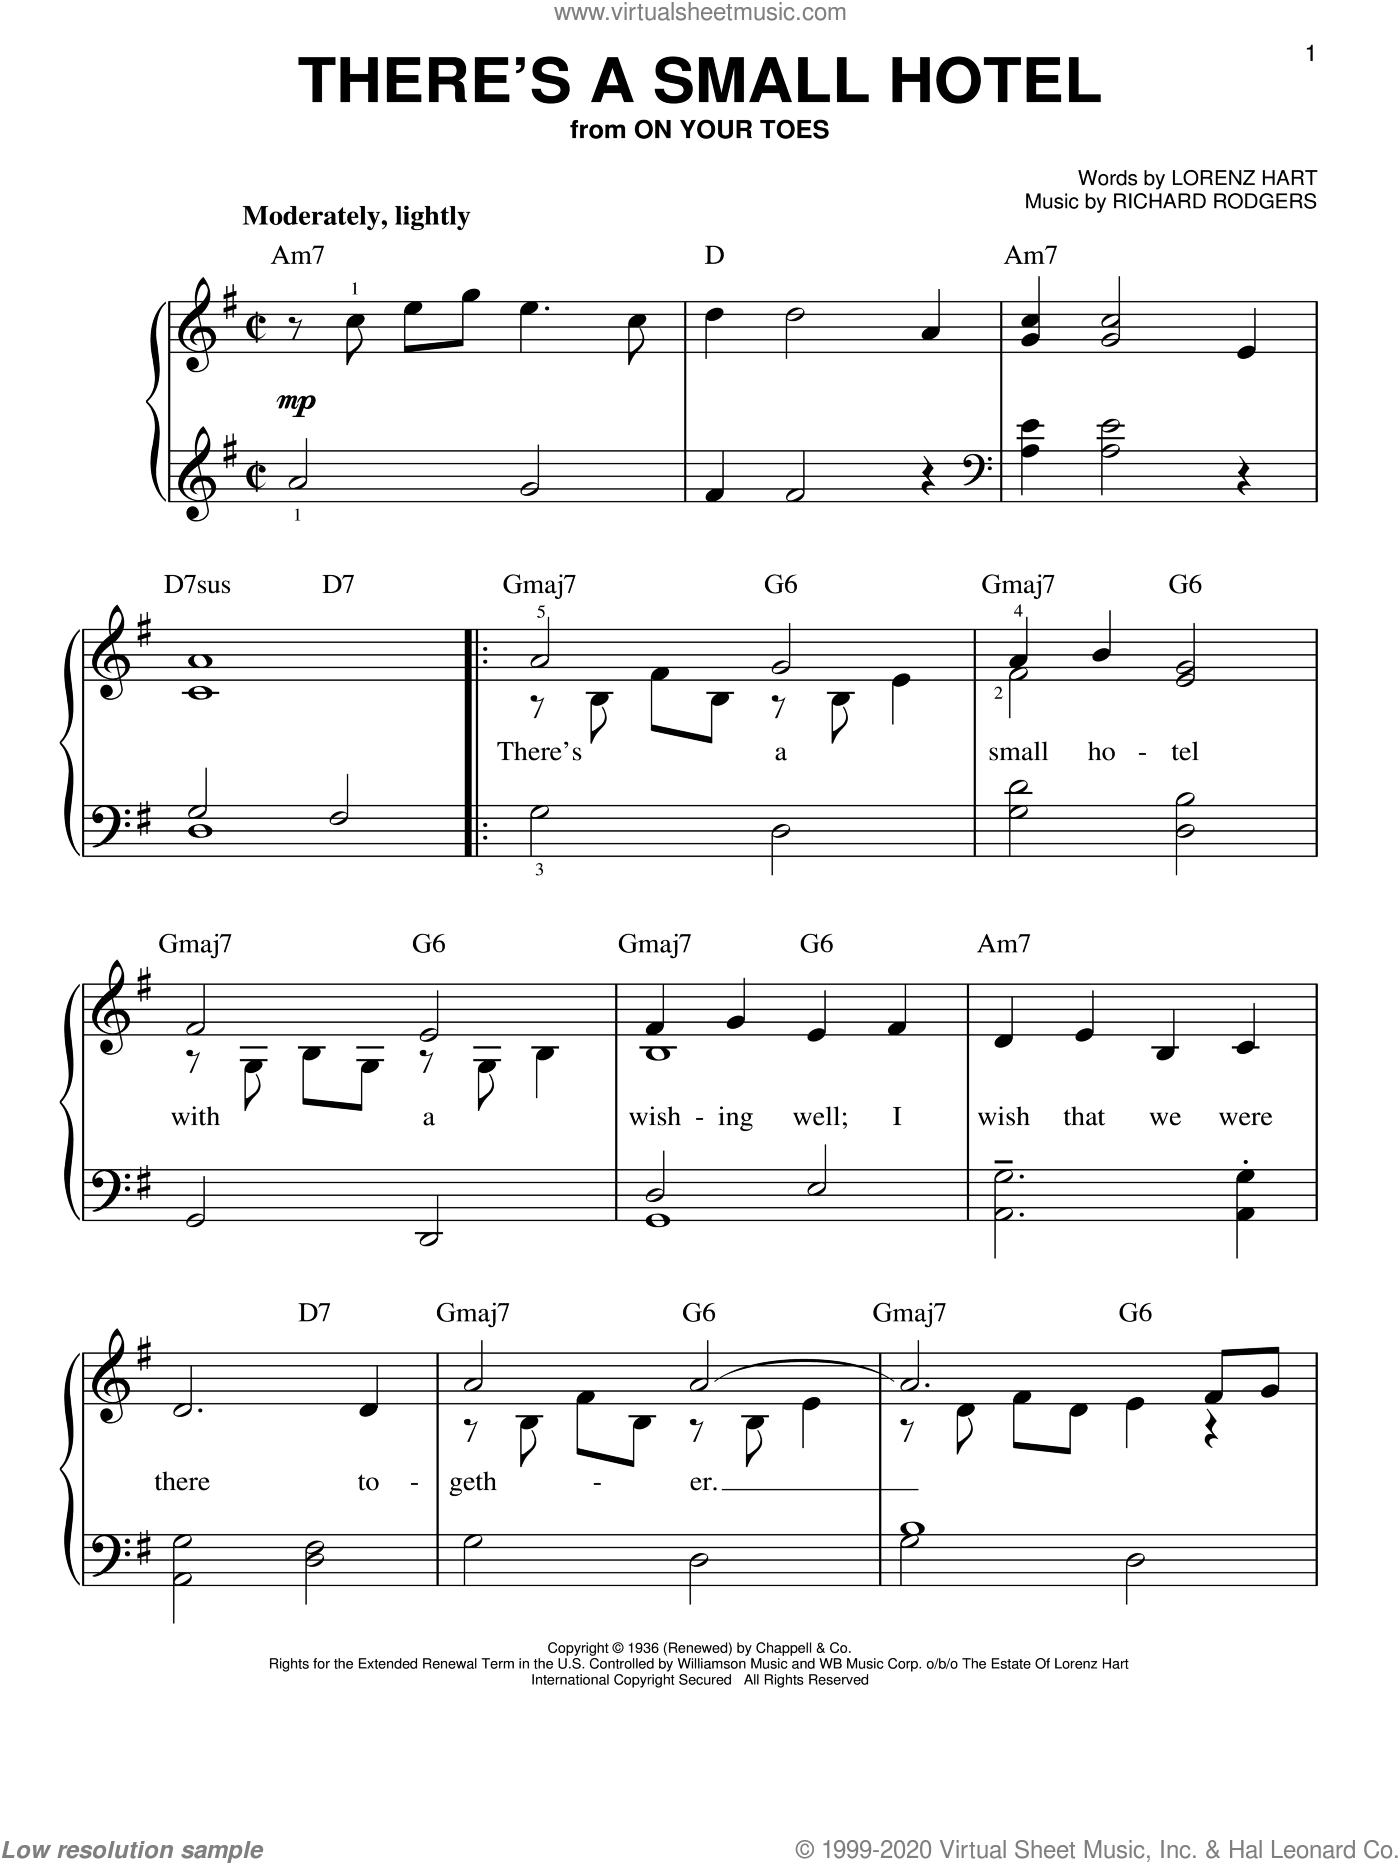 There's A Small Hotel sheet music for piano solo by Richard Rodgers, Rodgers & Hart, Sammy Davis Jr. and Lorenz Hart. Score Image Preview.